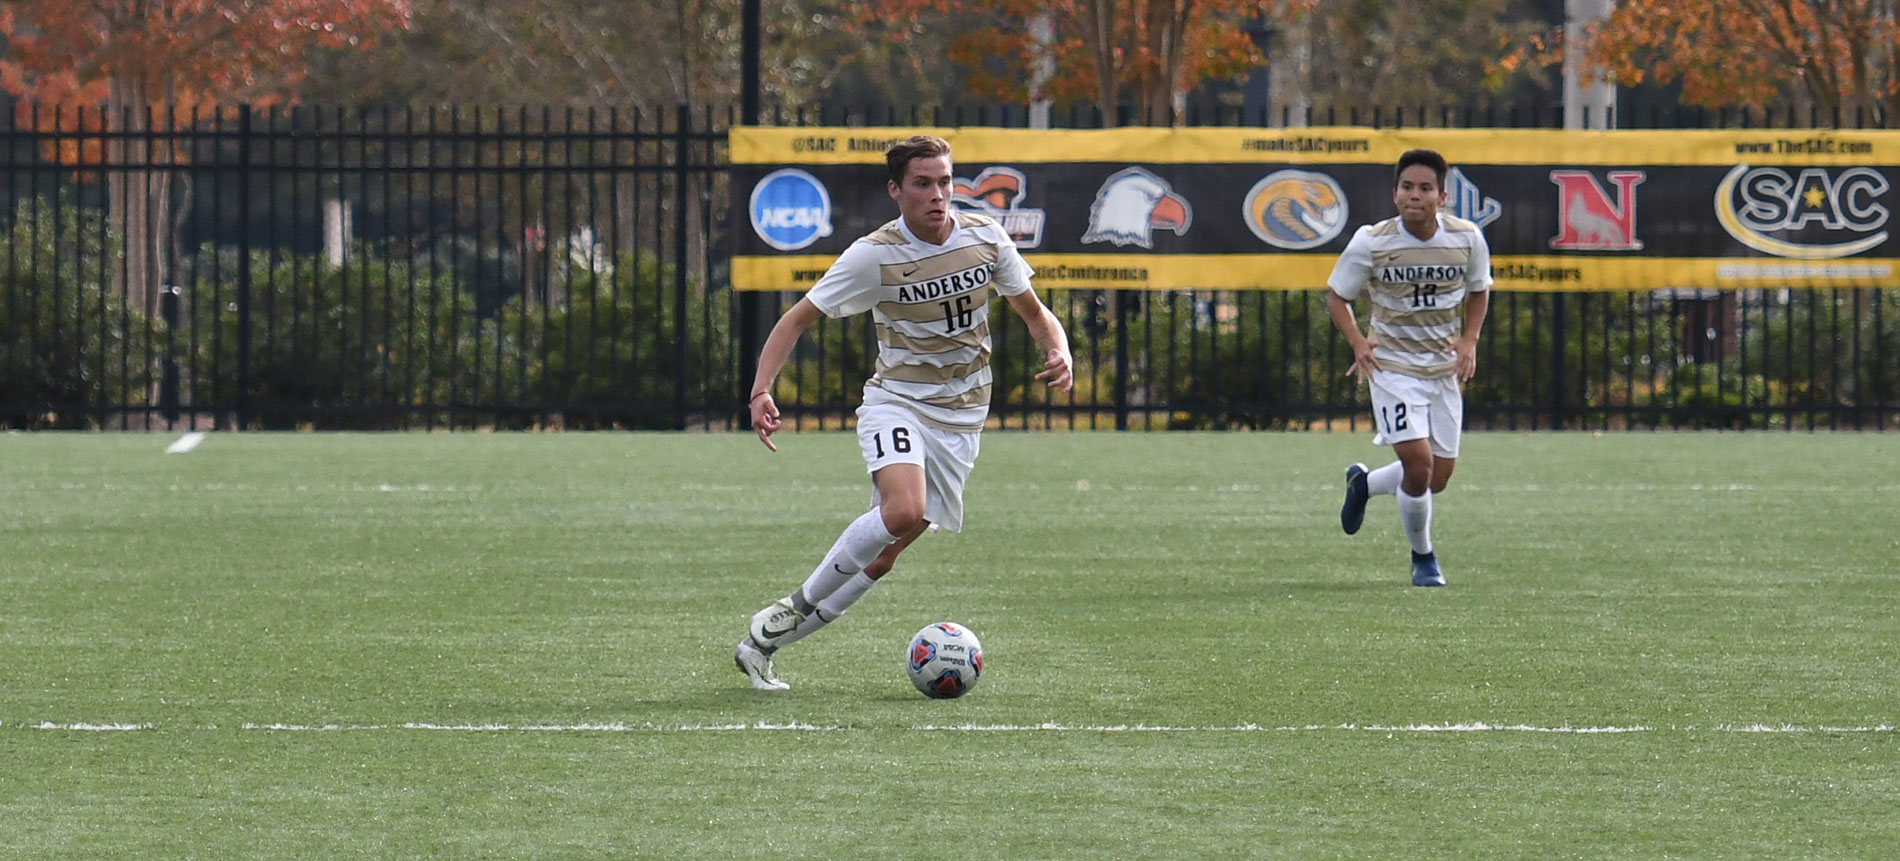 Trojans Eliminated from South Atlantic Conference Semifinals; 2-0